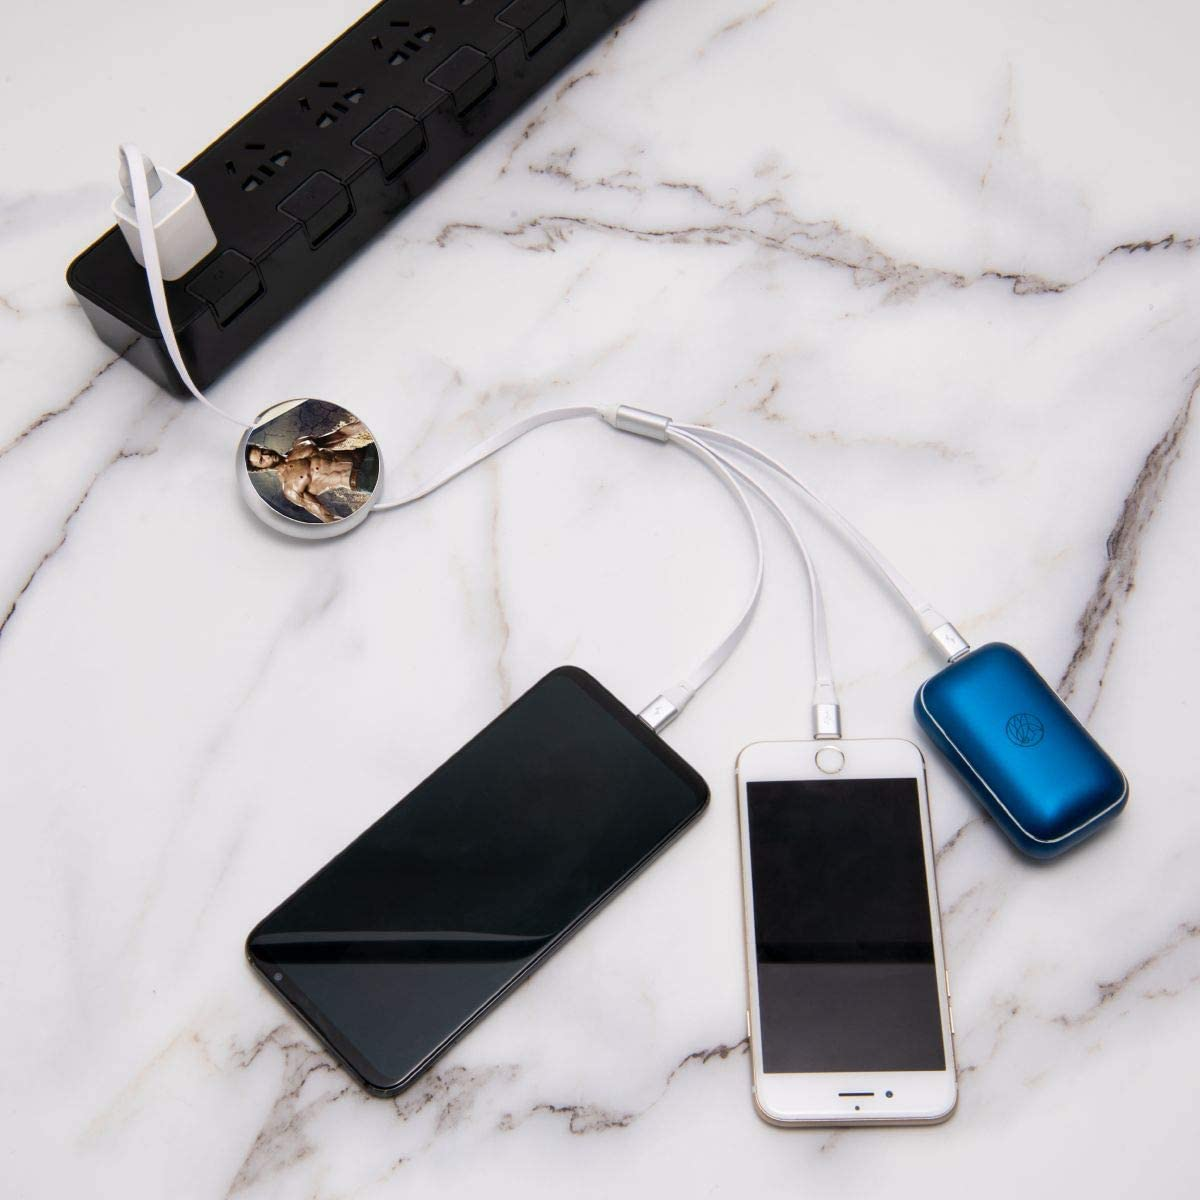 Wolverine USB Cable Three-in-One Round Charger Telescopic Data Multifunction Cable